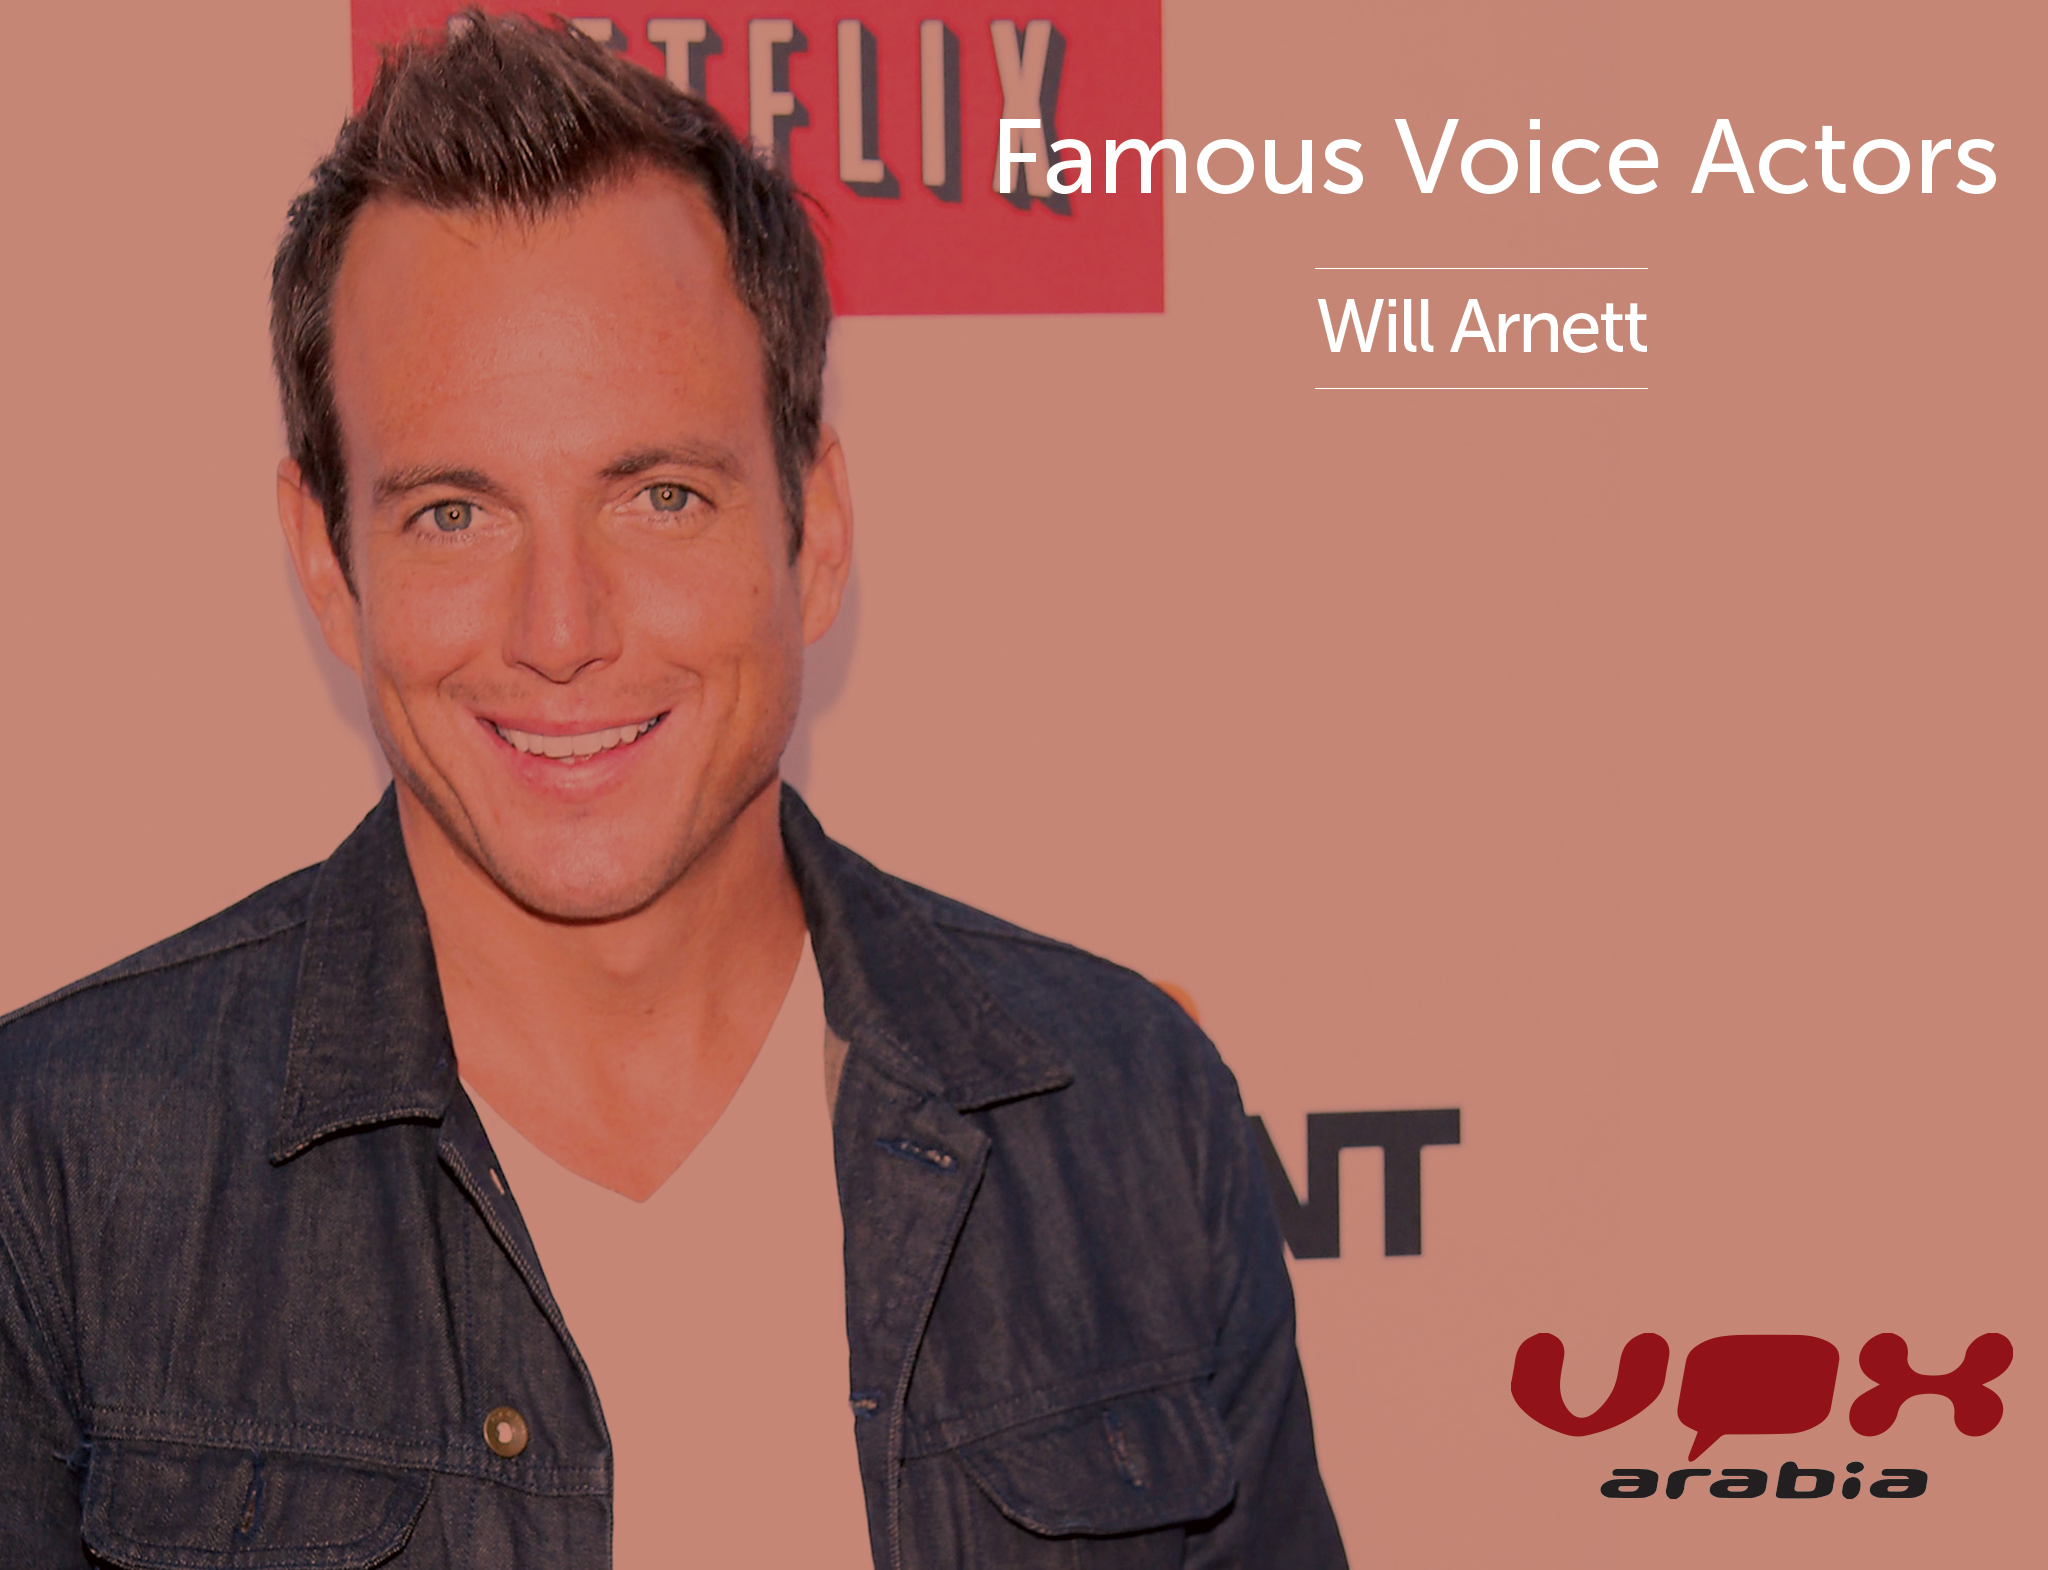 Famous Voice Over | Will Arnett | Arabic Voice Artist